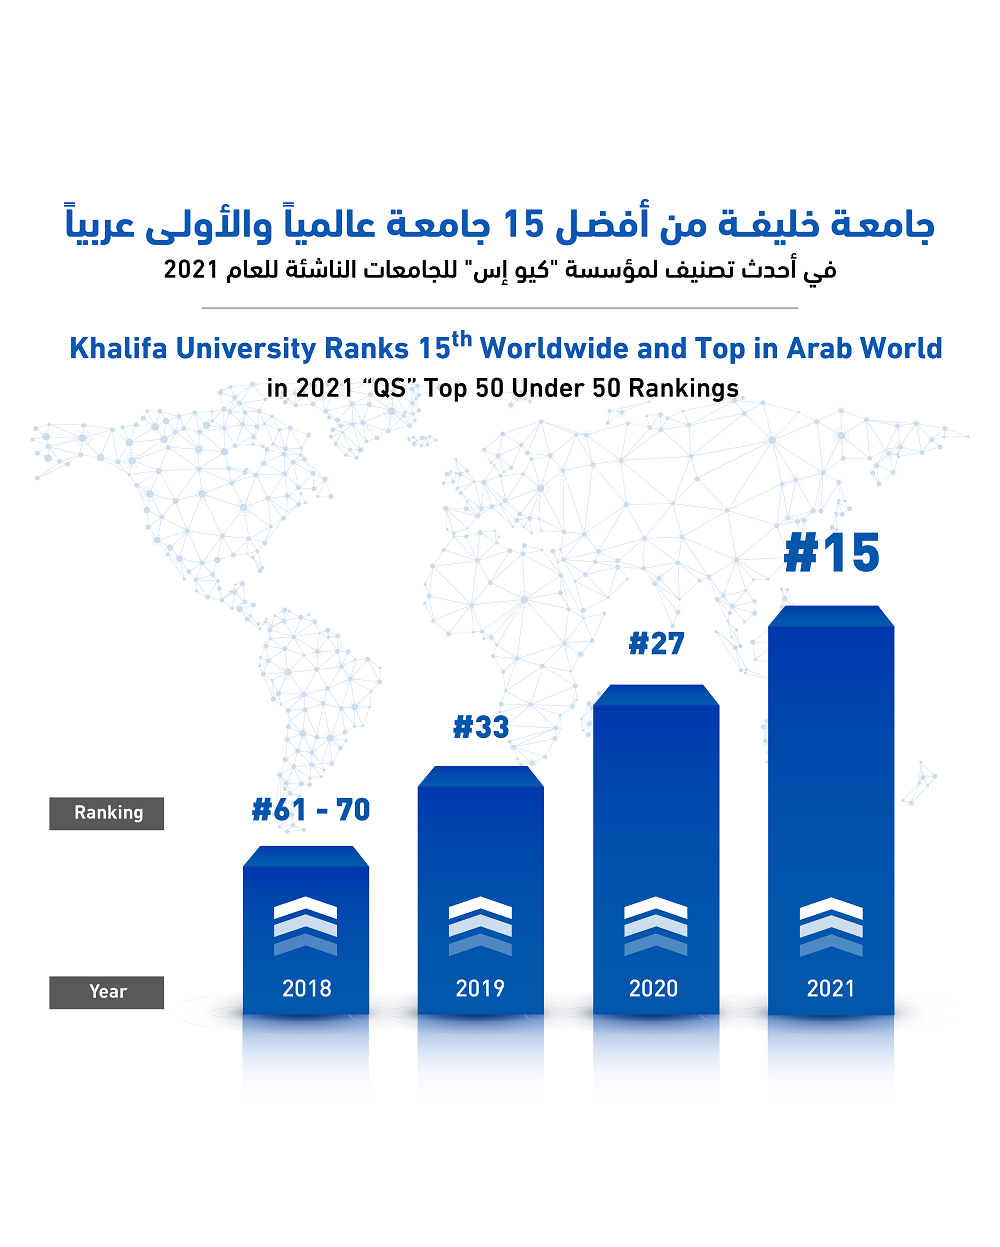 Khalifa University Ranks 15th Worldwide and Top in Arab World in 2021 QS Top 50 Under 50 Rankings